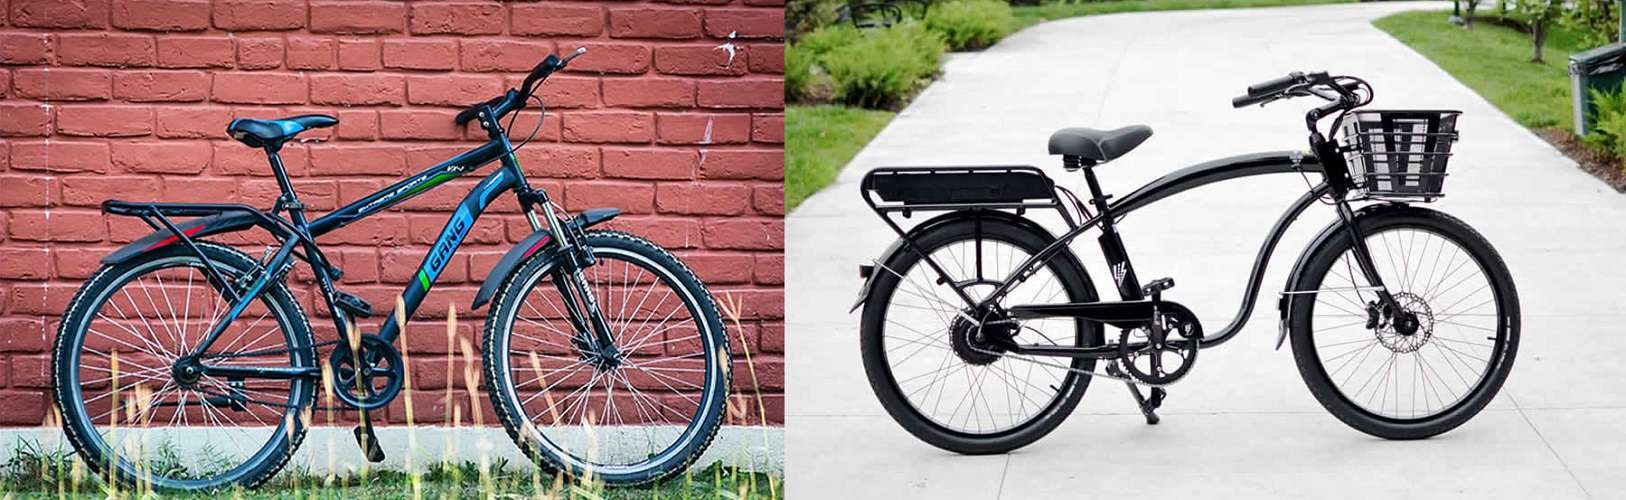 How Is A Cruiser Bike Different From A Mountain Bike